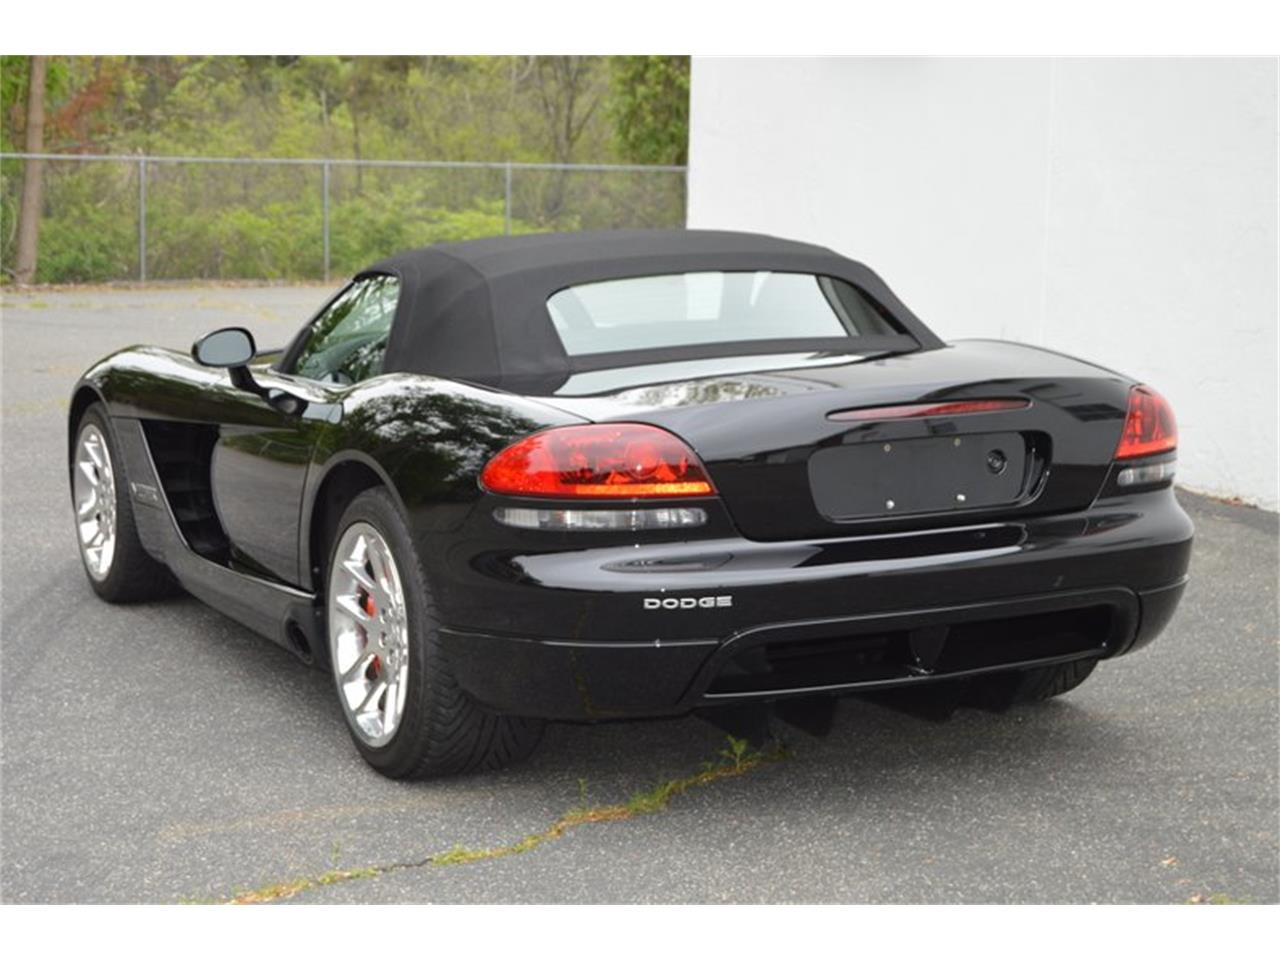 Large Picture of 2004 Dodge Viper located in Springfield Massachusetts - $46,995.00 Offered by Mutual Enterprises Inc. - Q8EU